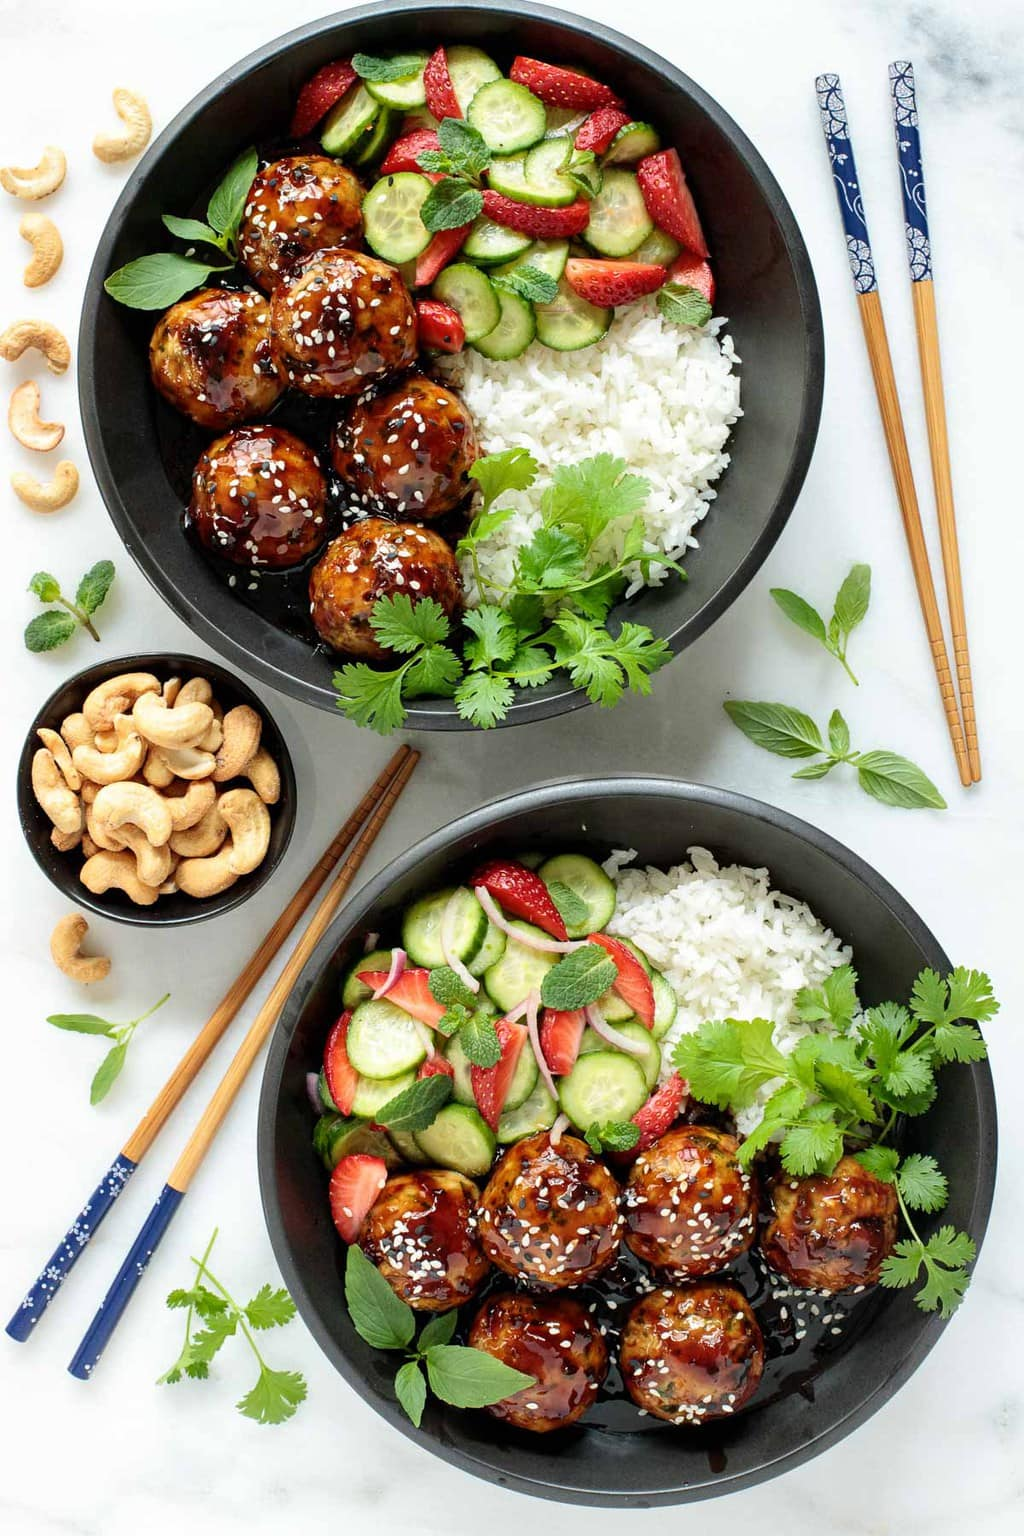 Overhead photo of two black bowls filled with Strawberry Balsamic Glazed Chicken Meatballs with fresh cucumbers, strawberries and herbs with a bed of rice on one side.